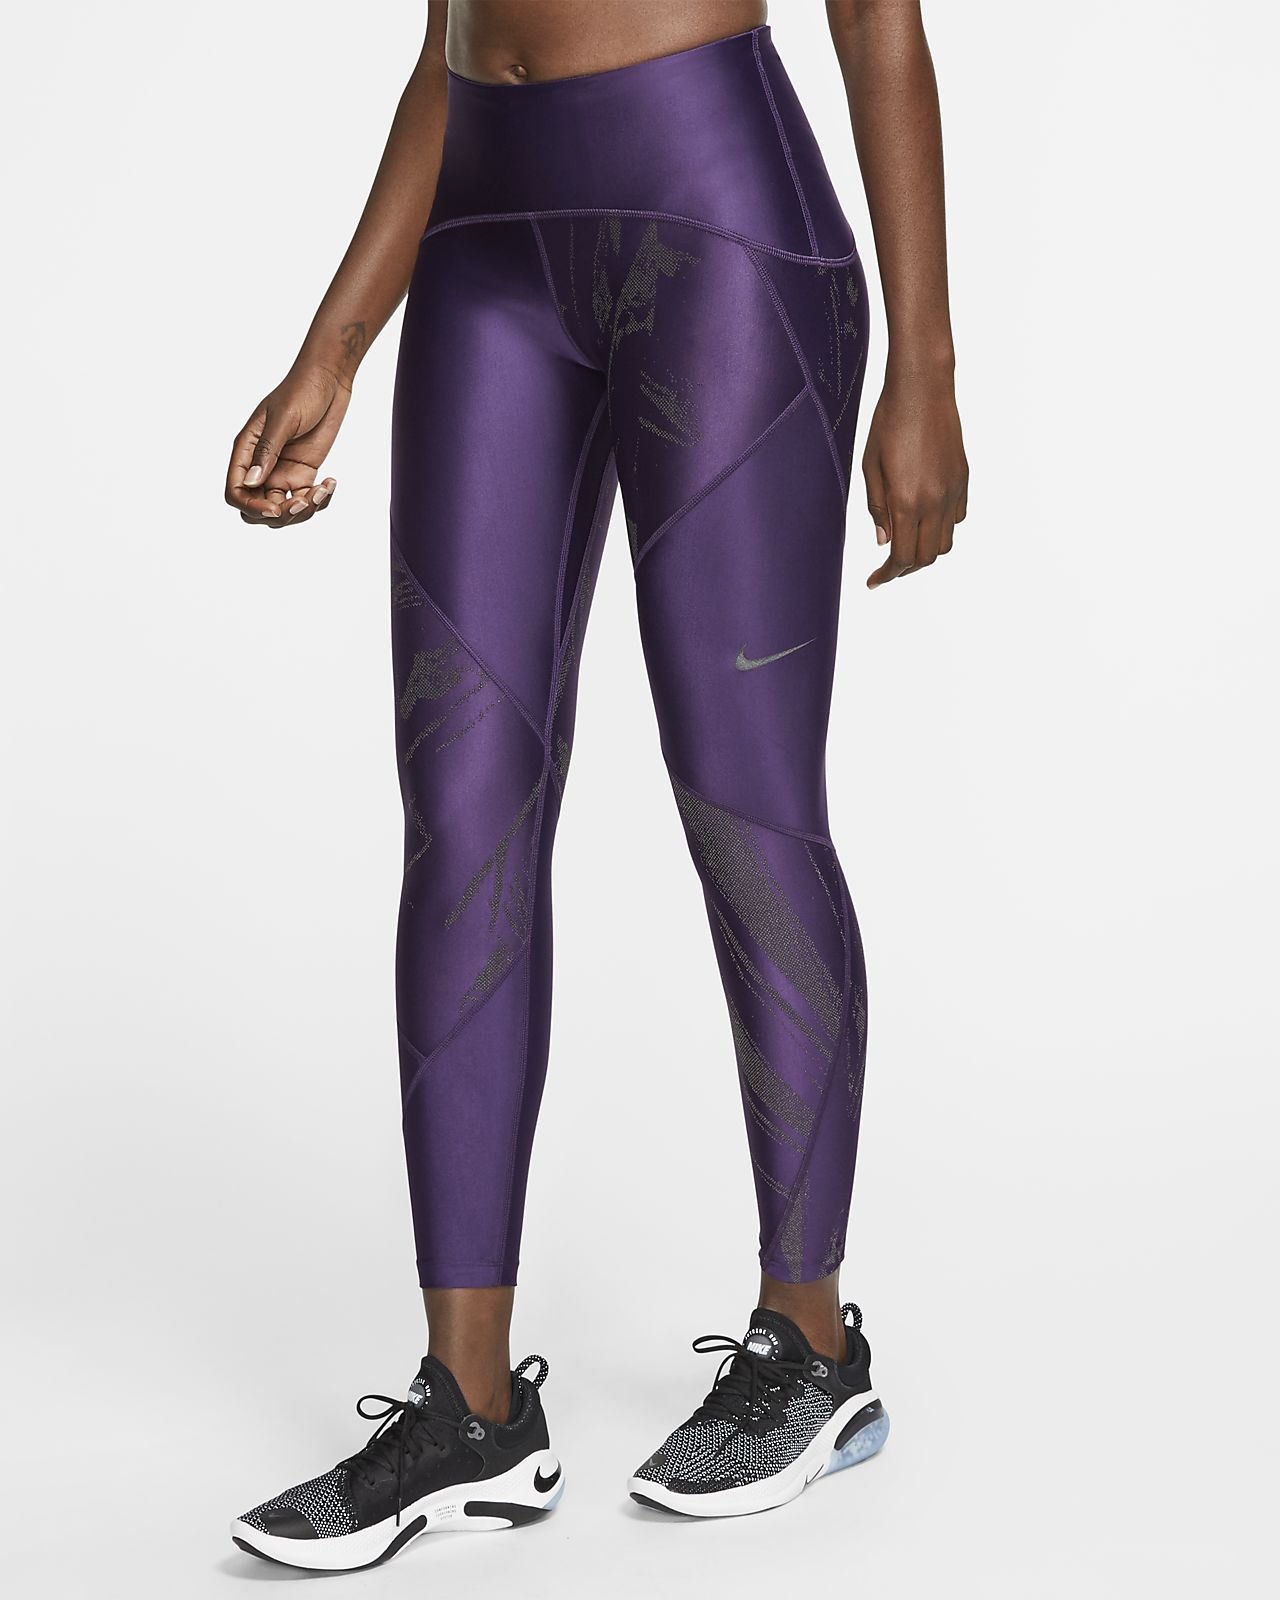 vast selection exclusive deals special section Nike Speed Women's 7/8 Running Tights